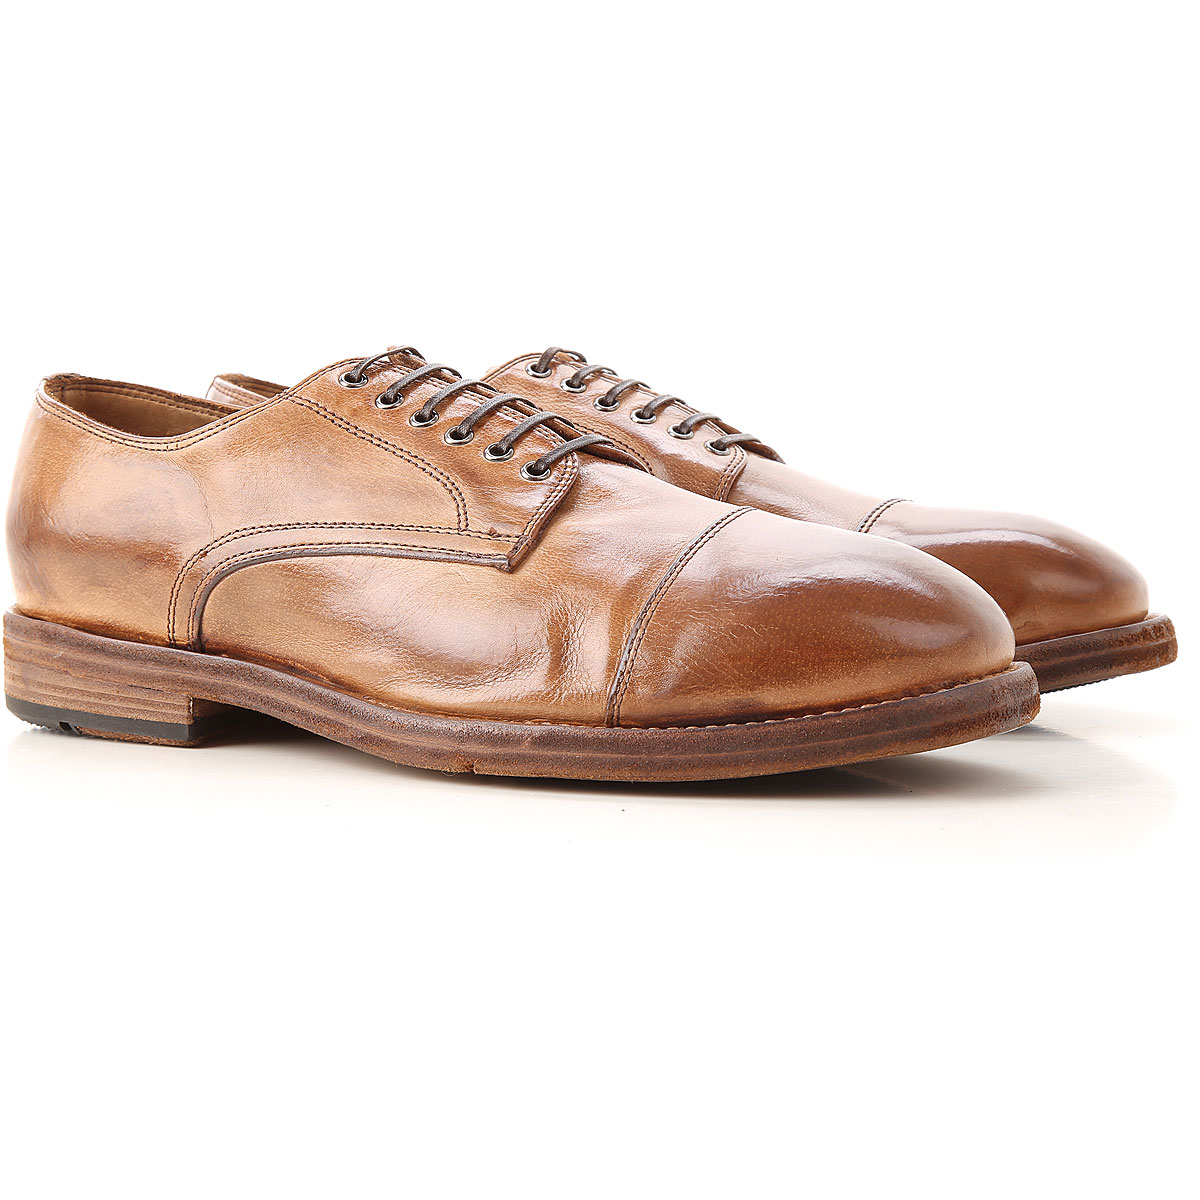 Lemargo Lace Up Shoes for Men Oxfords, Derbies and Brogues On Sale, Cork, Leather, 2019, 10.5 11 7 8 9.5